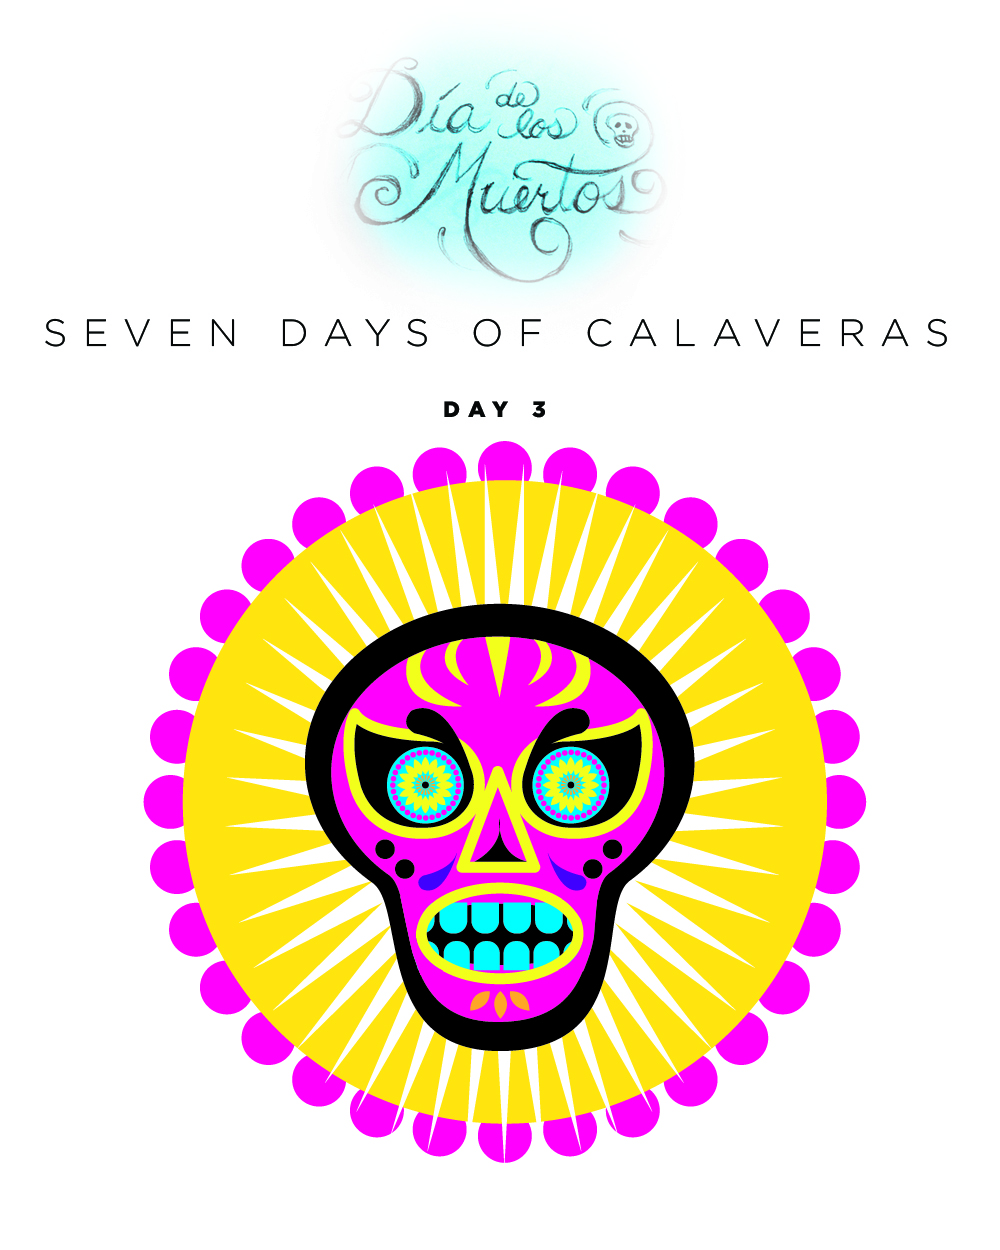 SEVEN days of calaveras day 3